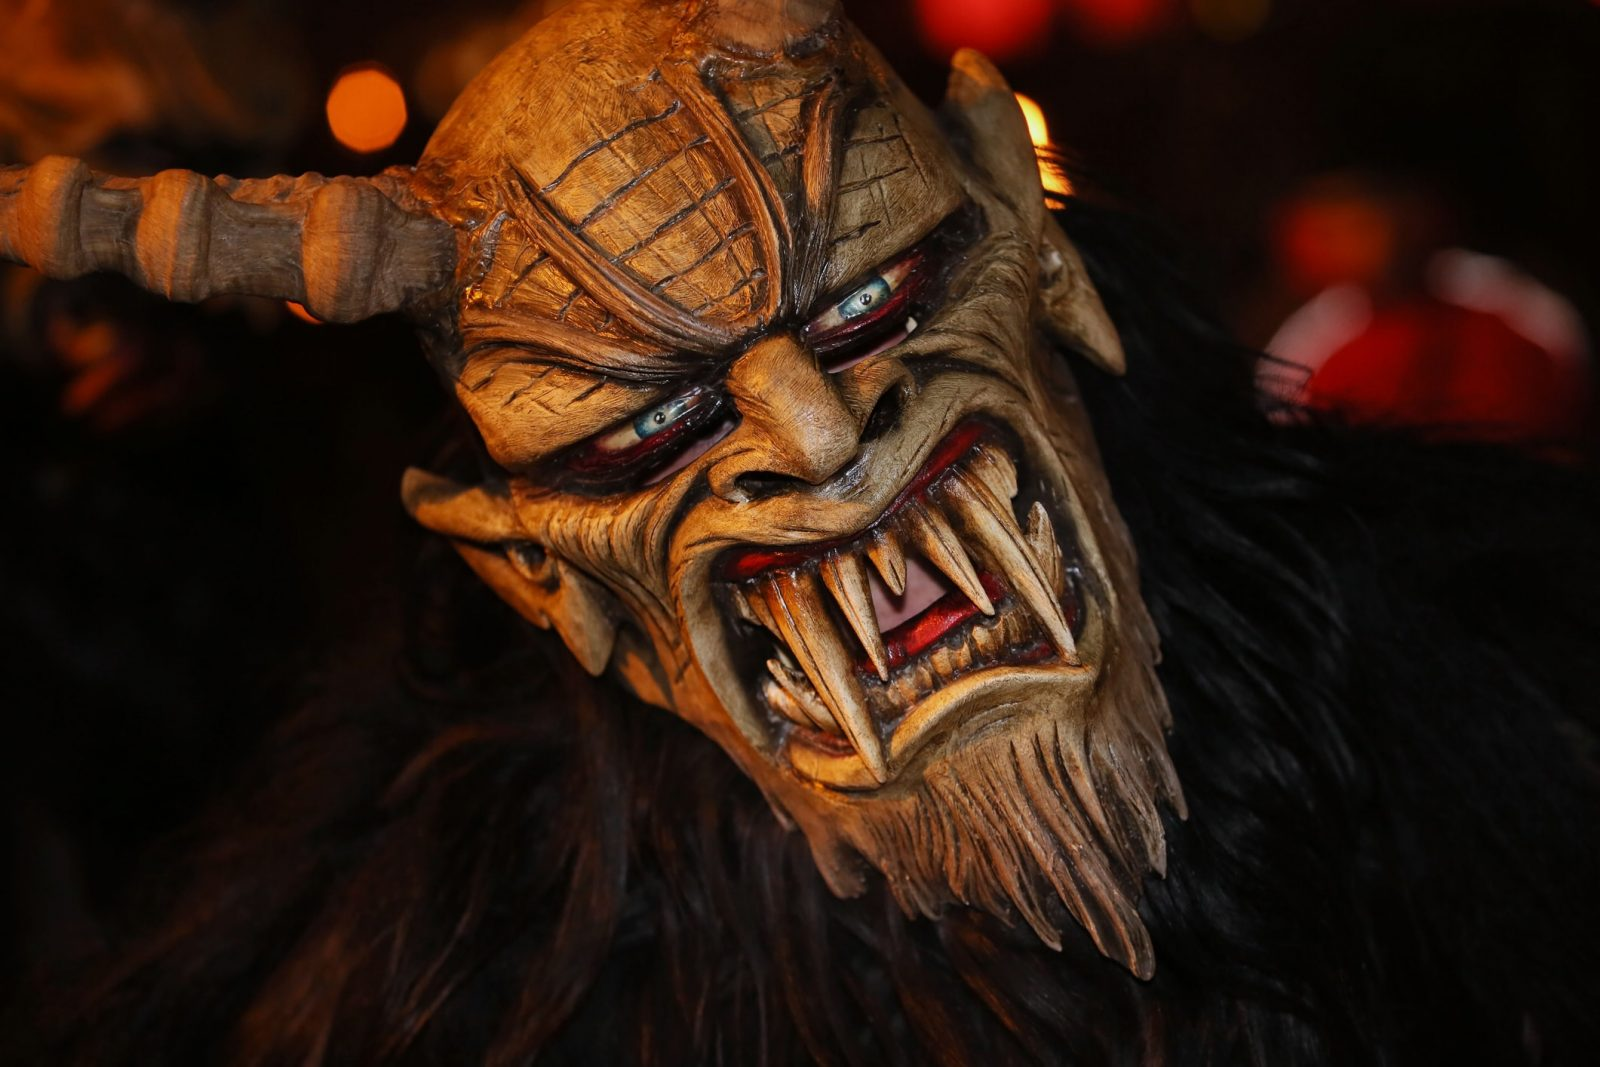 St. Mikuláš Eve: Is this devilish holiday too scary for kids?